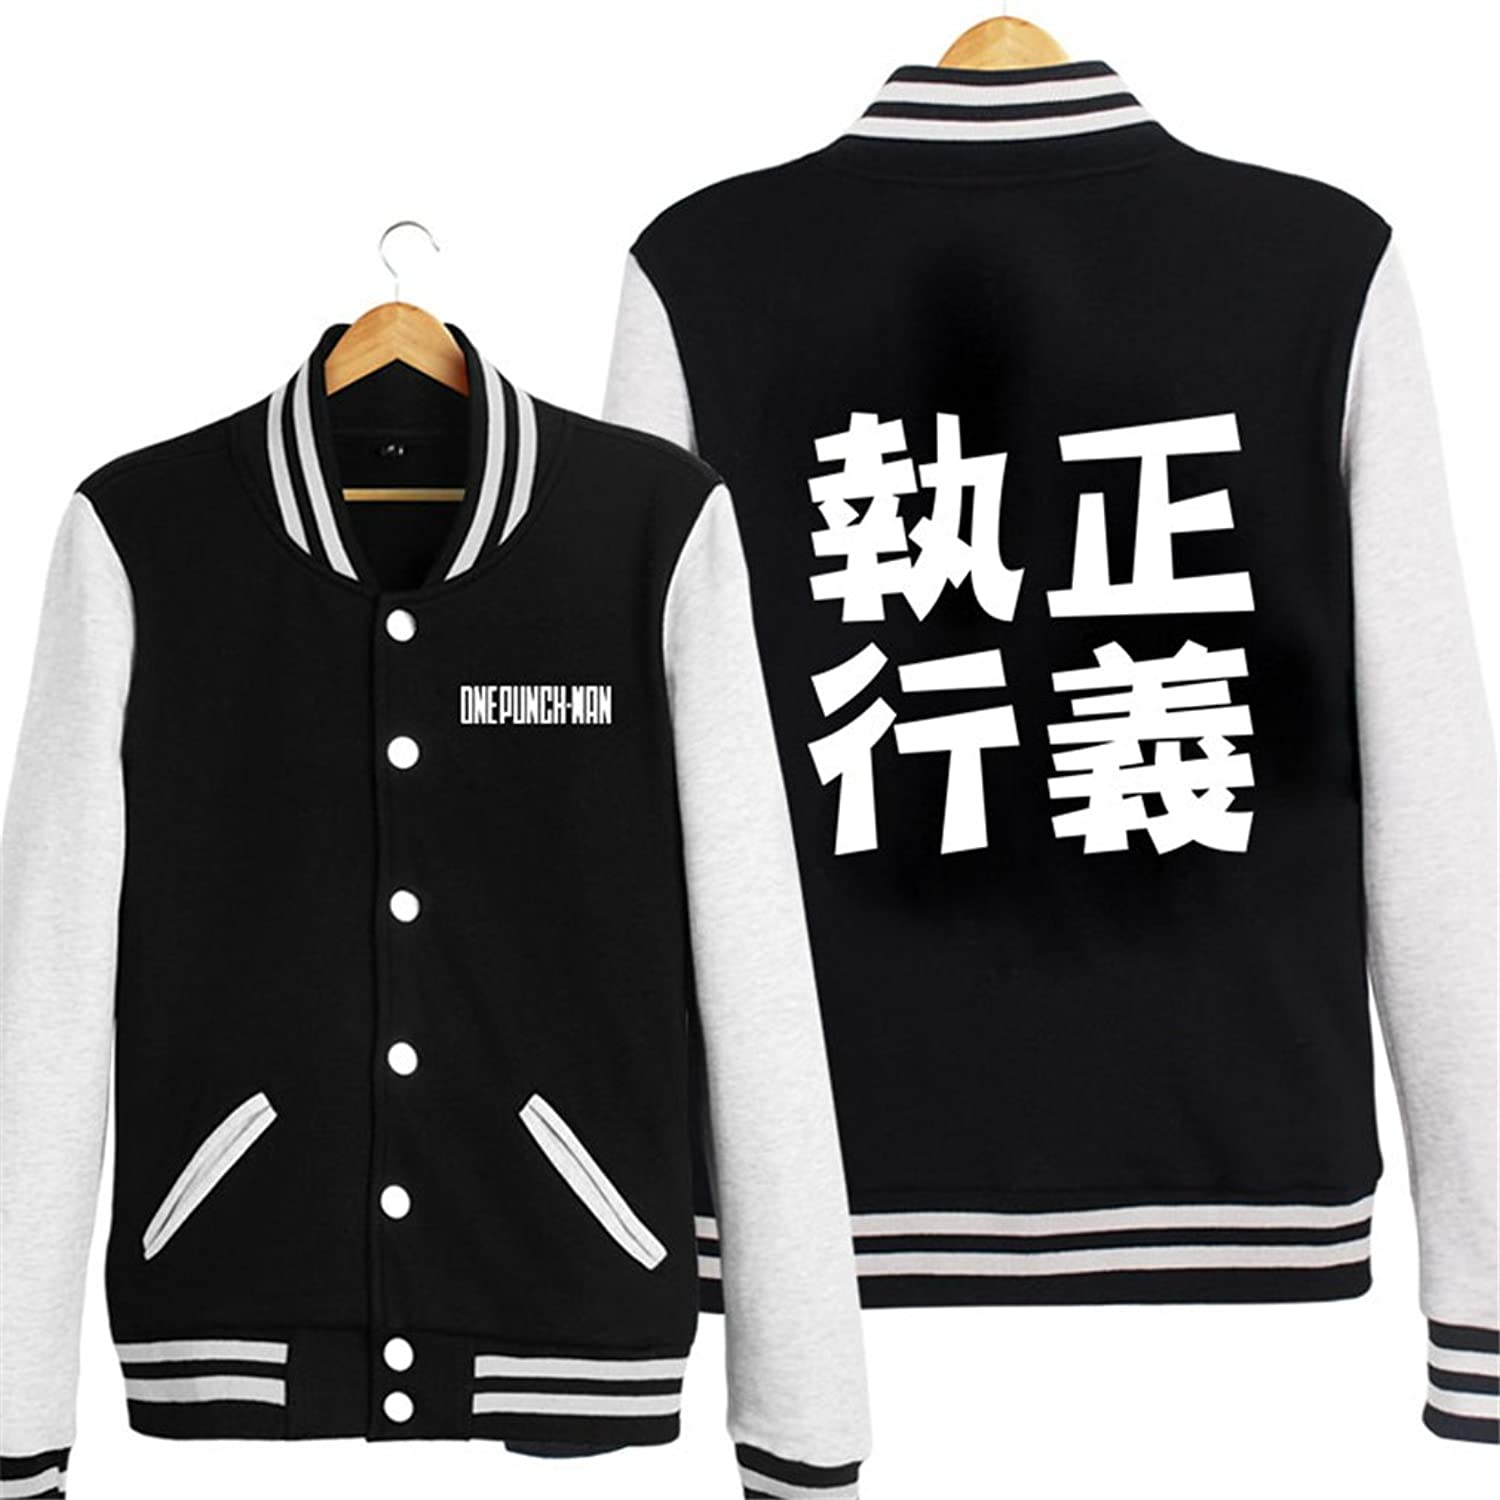 Bromeo One Punch Man Anime Unisex Baseball Uniform Long Sleeve Jacket Coat